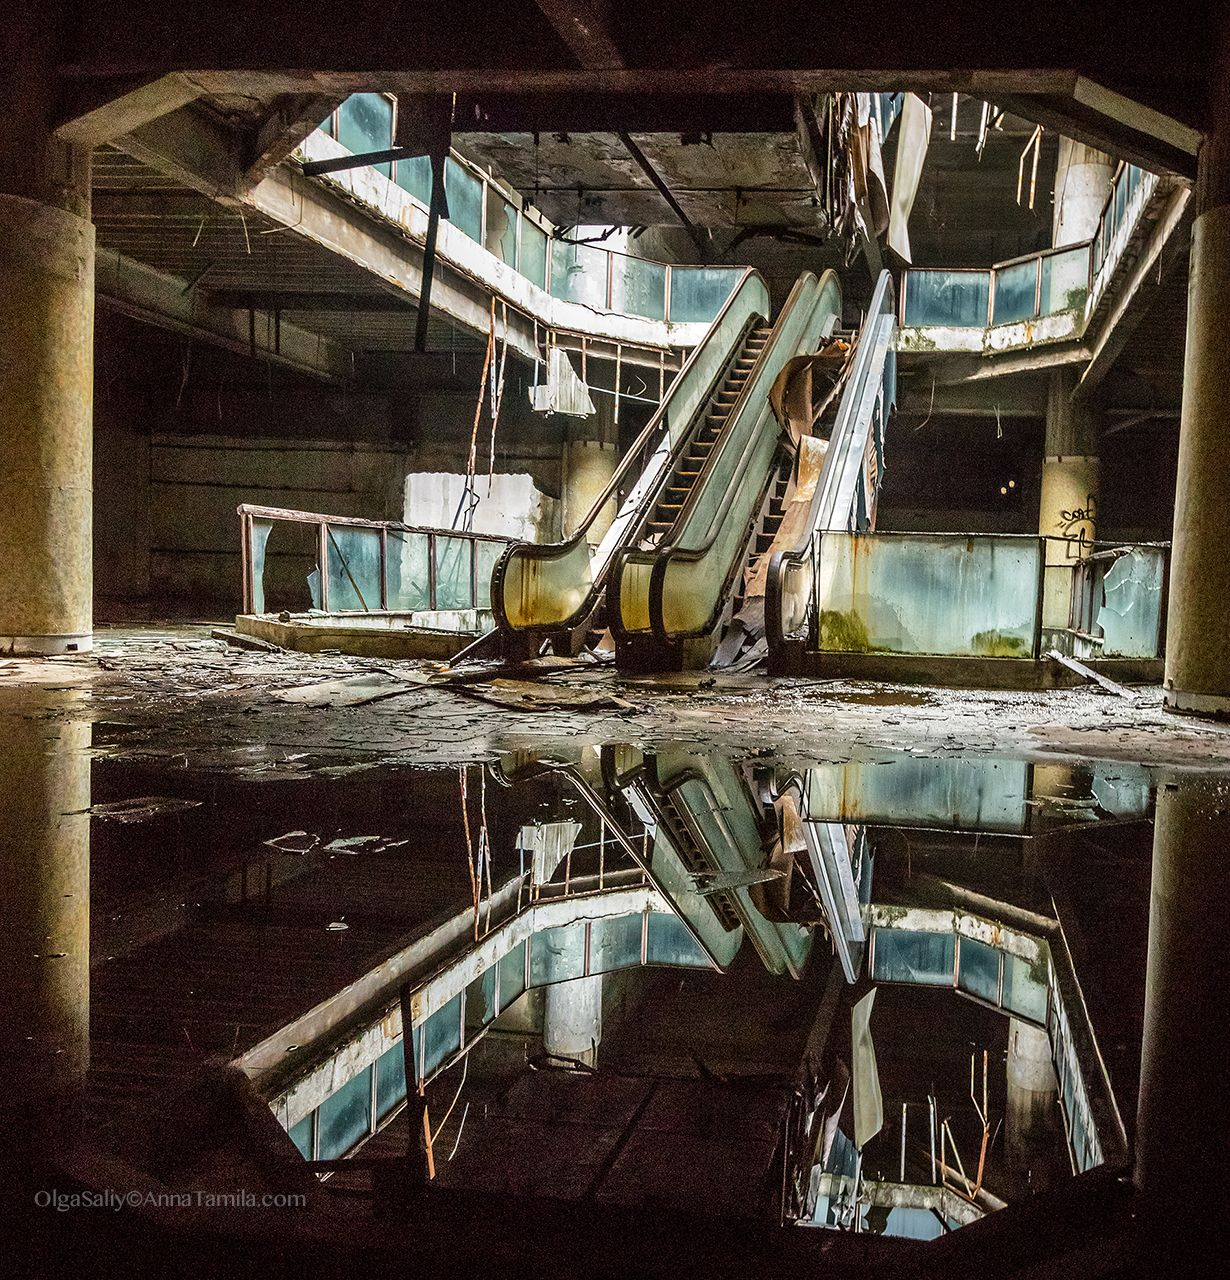 Abandoned Shopping Mall New World With Fish In Bangkok - Photographer captures abandoned worlds time forgot